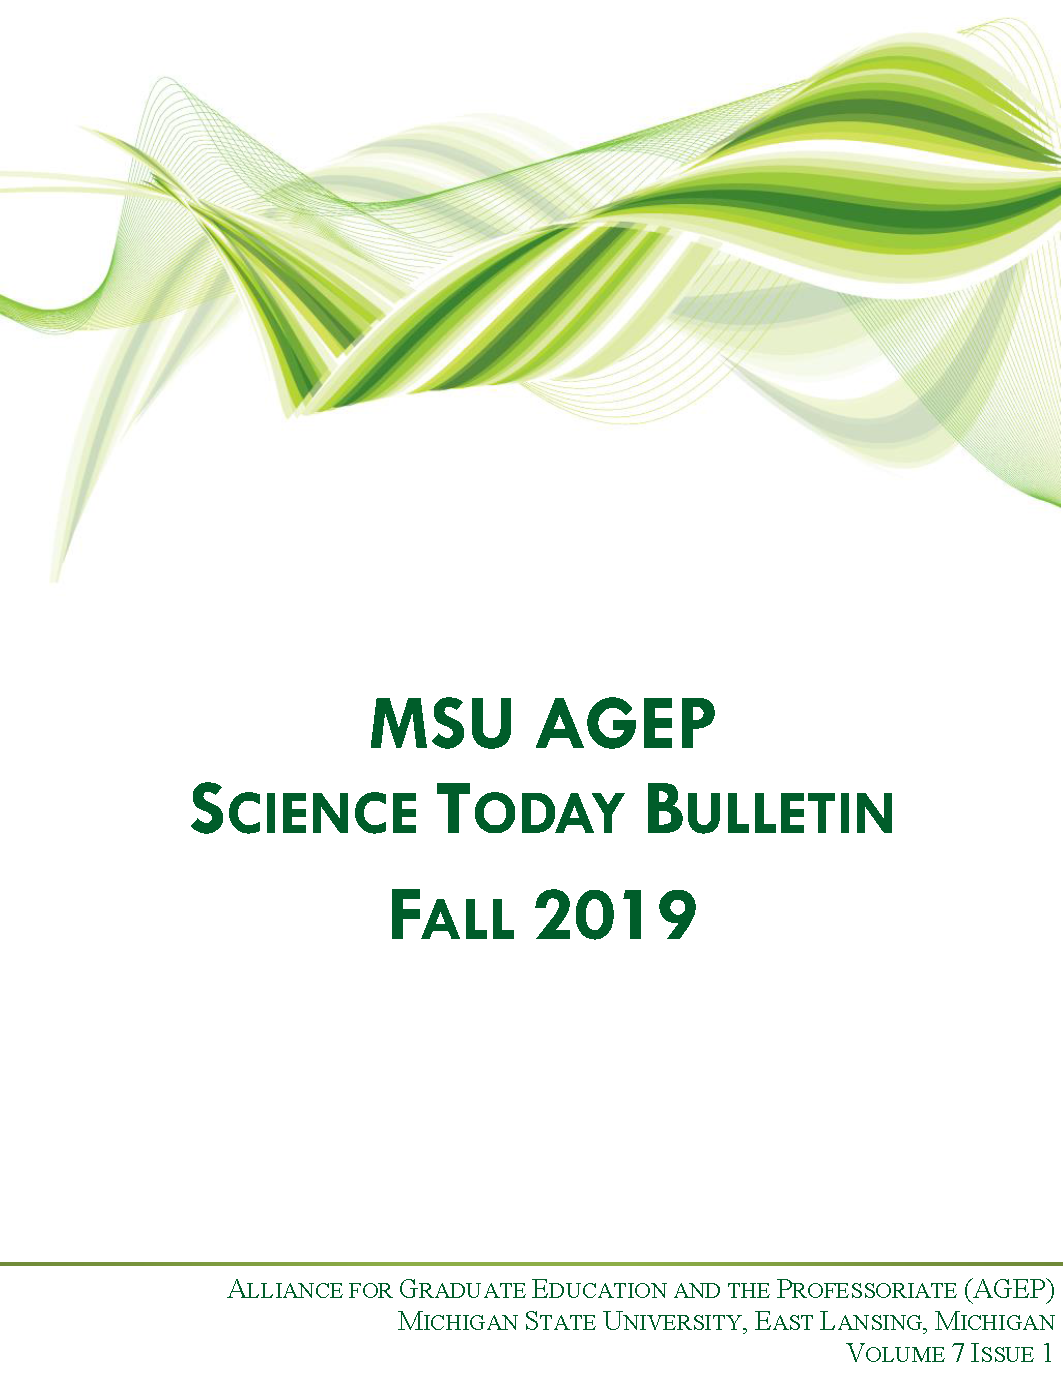 Science Today Bulletin 2019